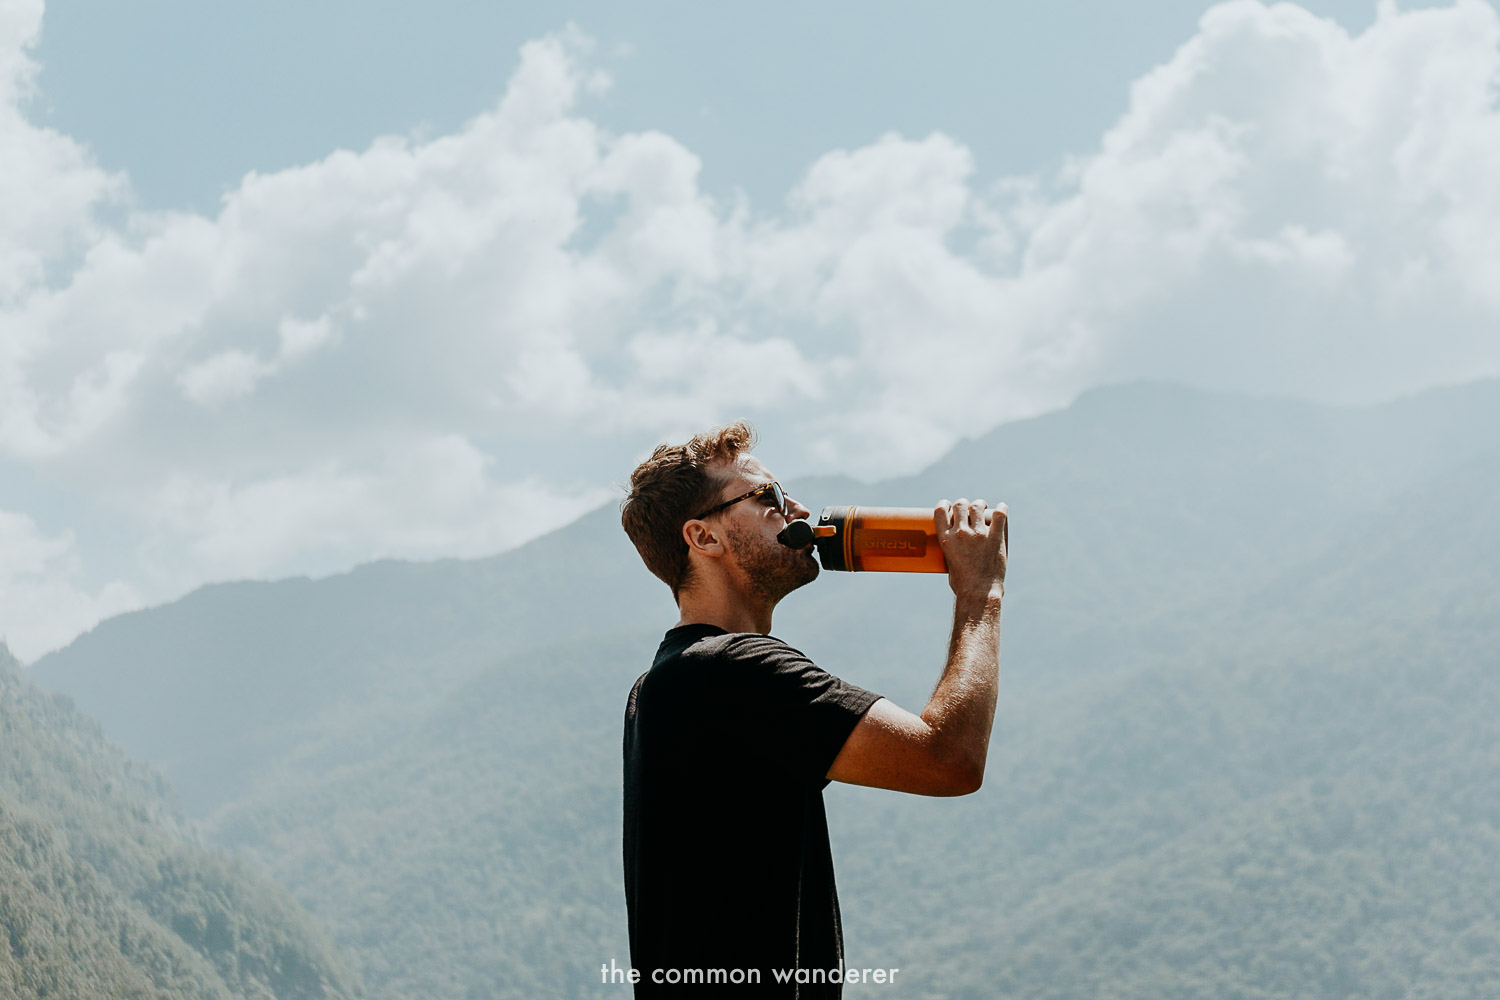 Using our Grayl drinking bottle while hiking the Ghorepani Poon Hill trek in Nepal